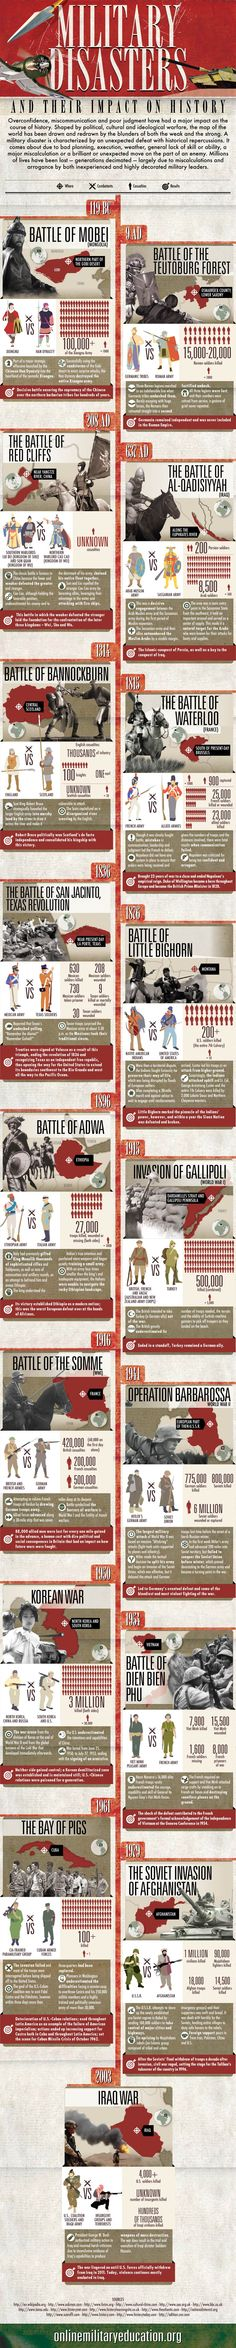 Military Disasters and Their Impact on History